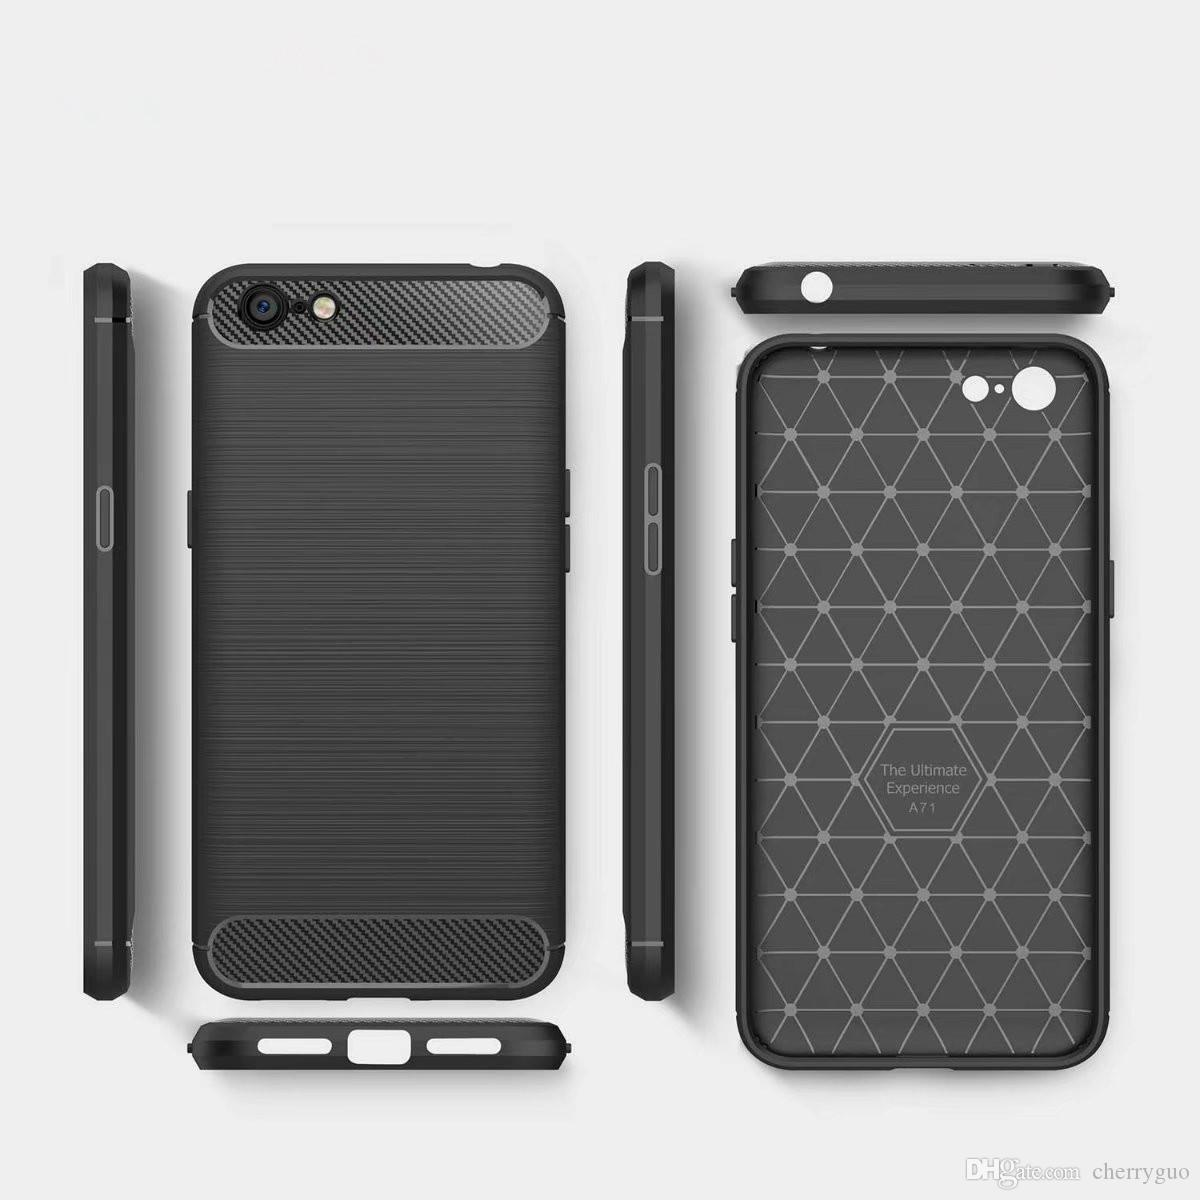 Soft Tpu Case For Oppo F5 Carbon Fiber Brushed Shockproof Non Flip F3 Grand Indonesia Slim Back Cover Telefonkasten Cabina Telefonica Puhelin Kotelo Carcasa De Telefono Telef